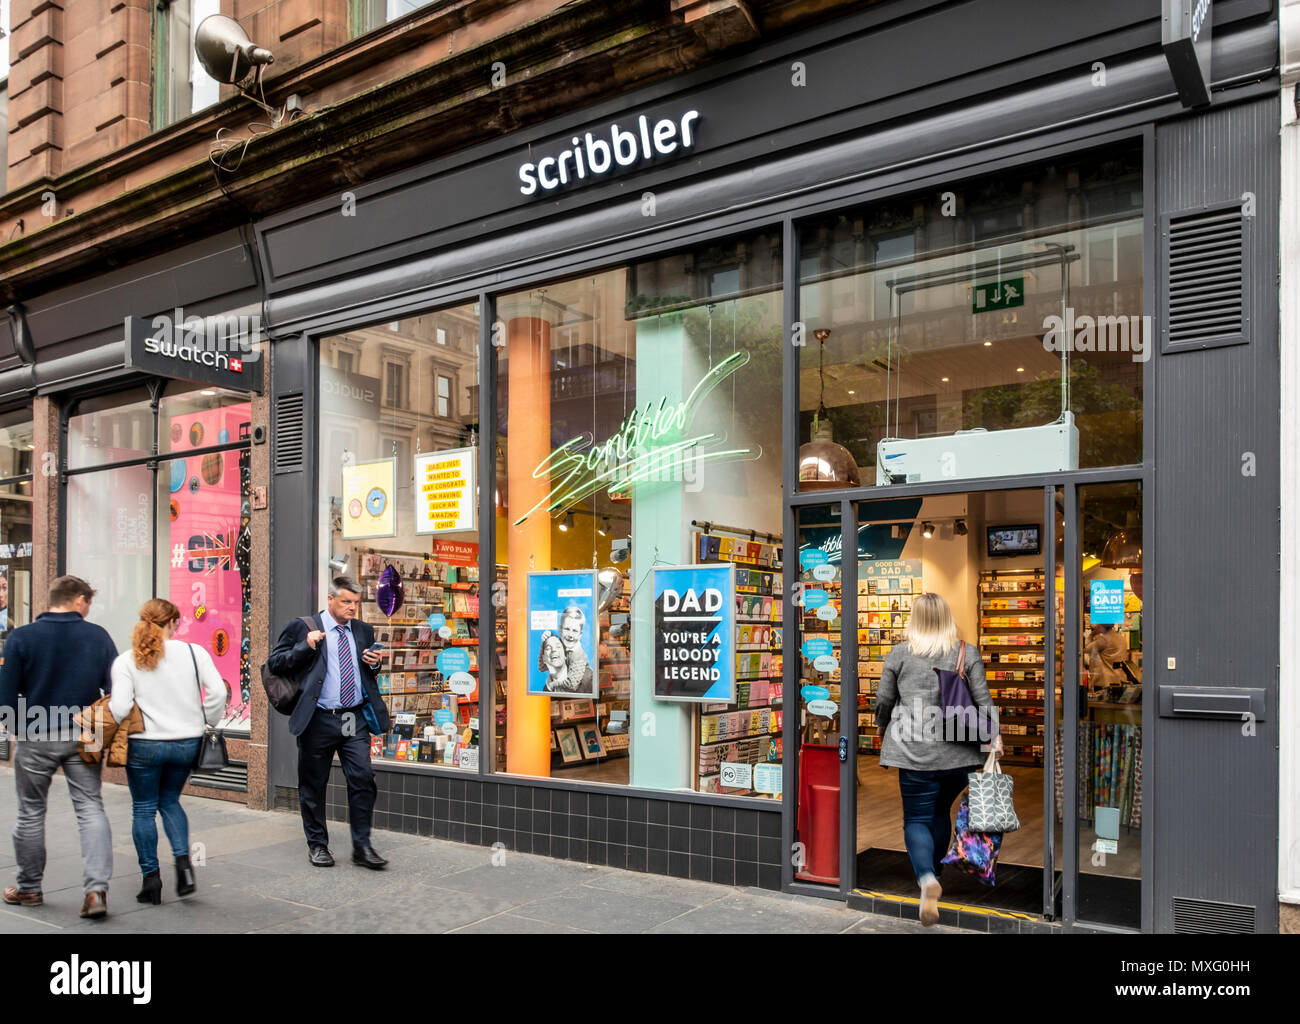 Branch Of Scribbler An Edgy Modern Greetings Cards Shop On